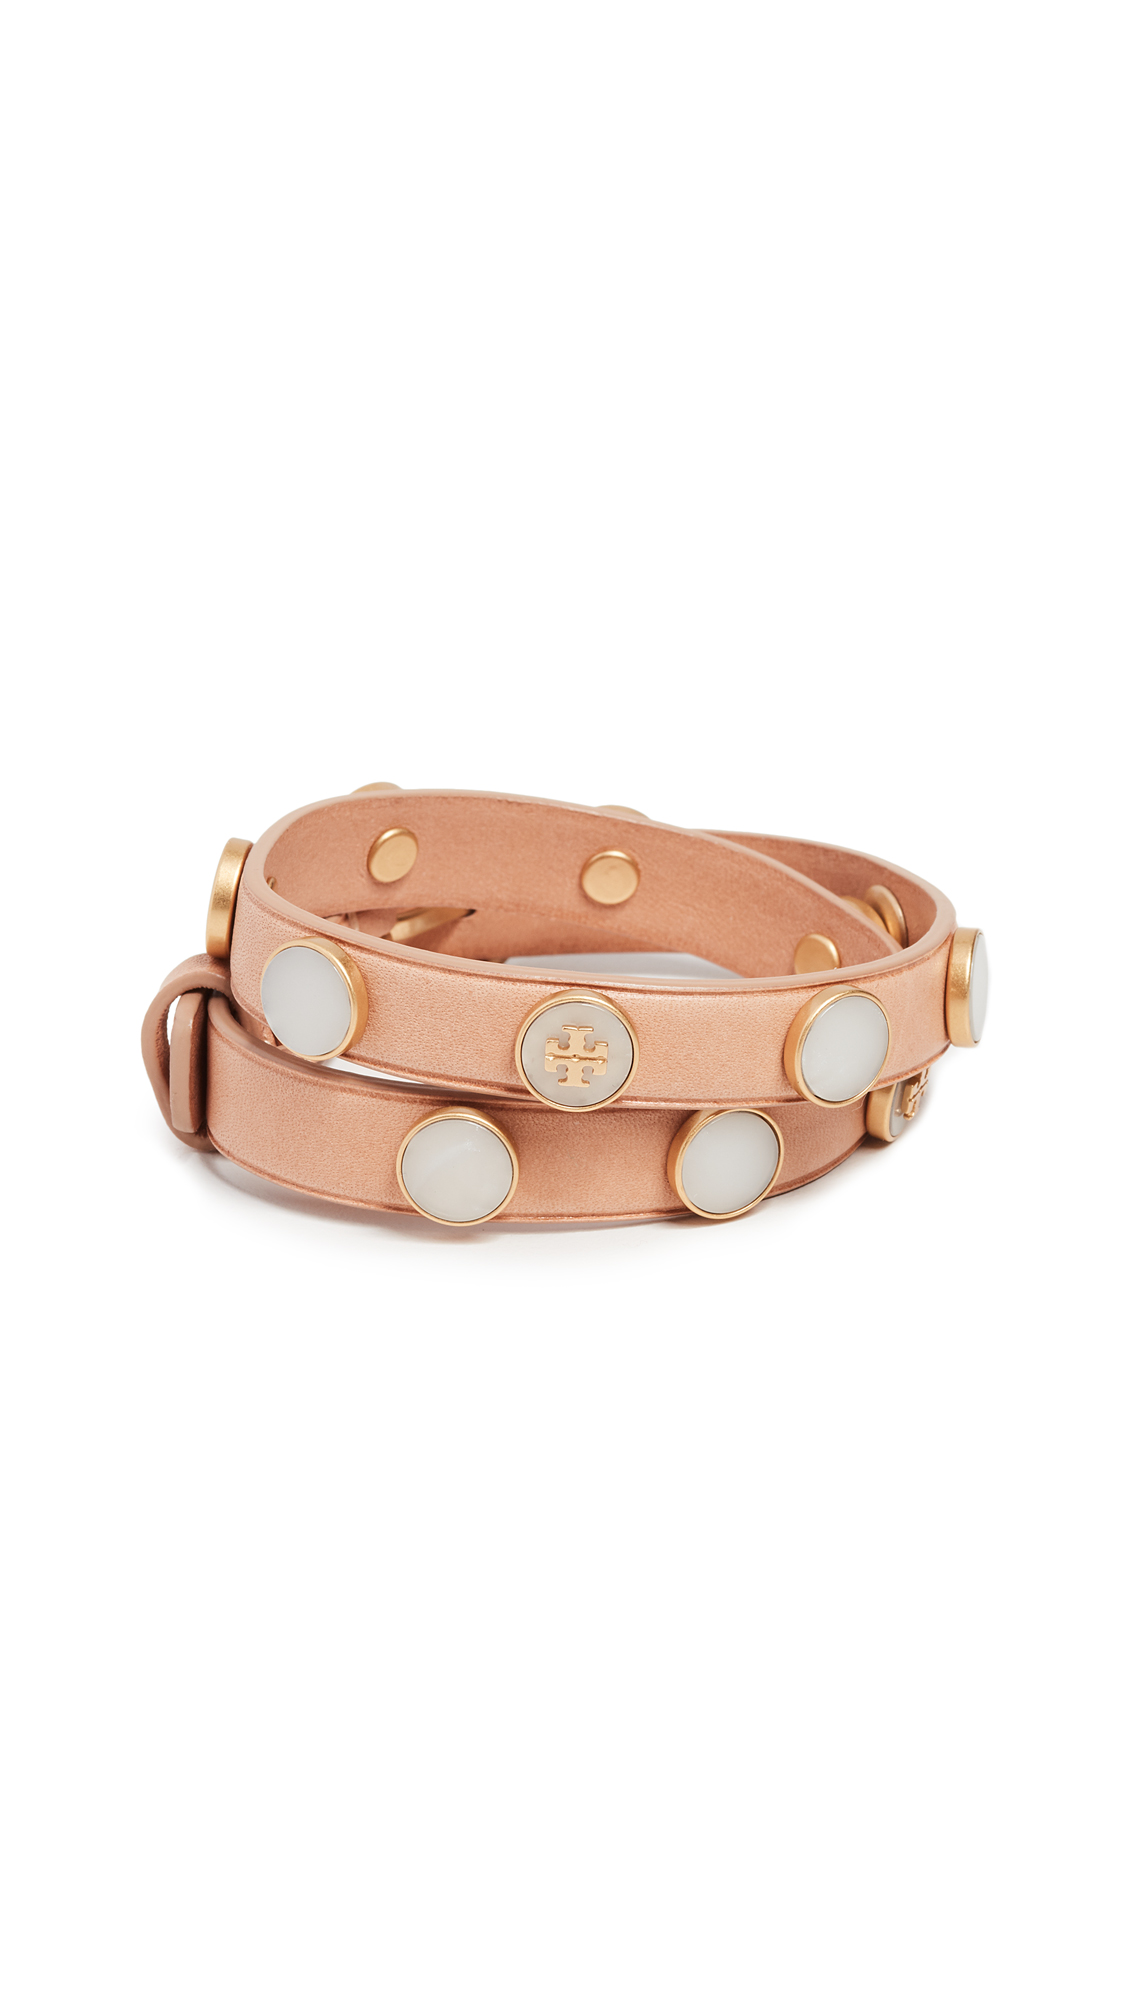 Tory Burch Leather Double Wrap Bracelet In Vachetta/Mother Of Pearl